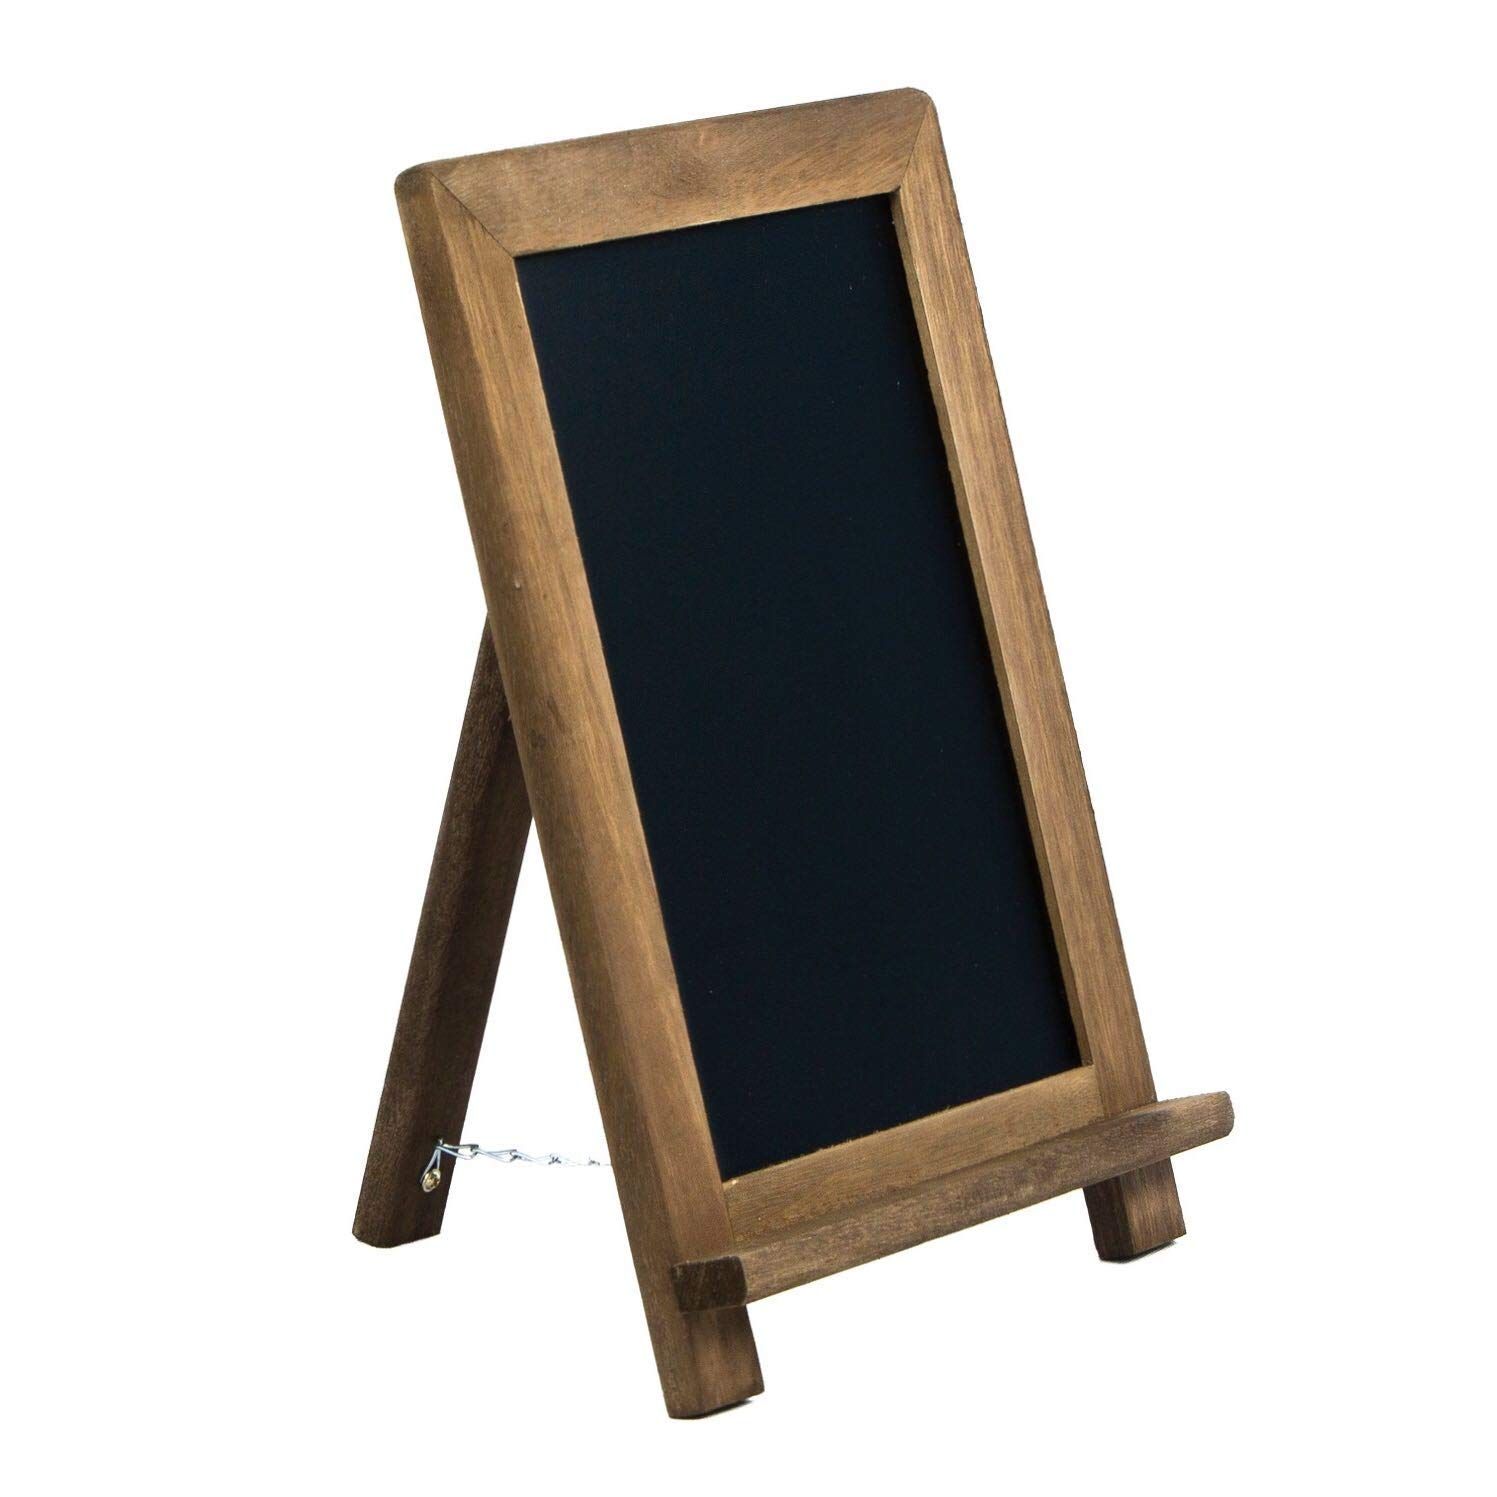 Decorative Chalkboards Solid Pine Wood Frame With Smooth Magnetic Surface Chalk Board Easel For Home Decoration Wedding Kitchen Menu Whitewashed Rustic Chalkboard Sign 15 X12 Tabletop Stand And Wall Hanging Display Home Kitchen